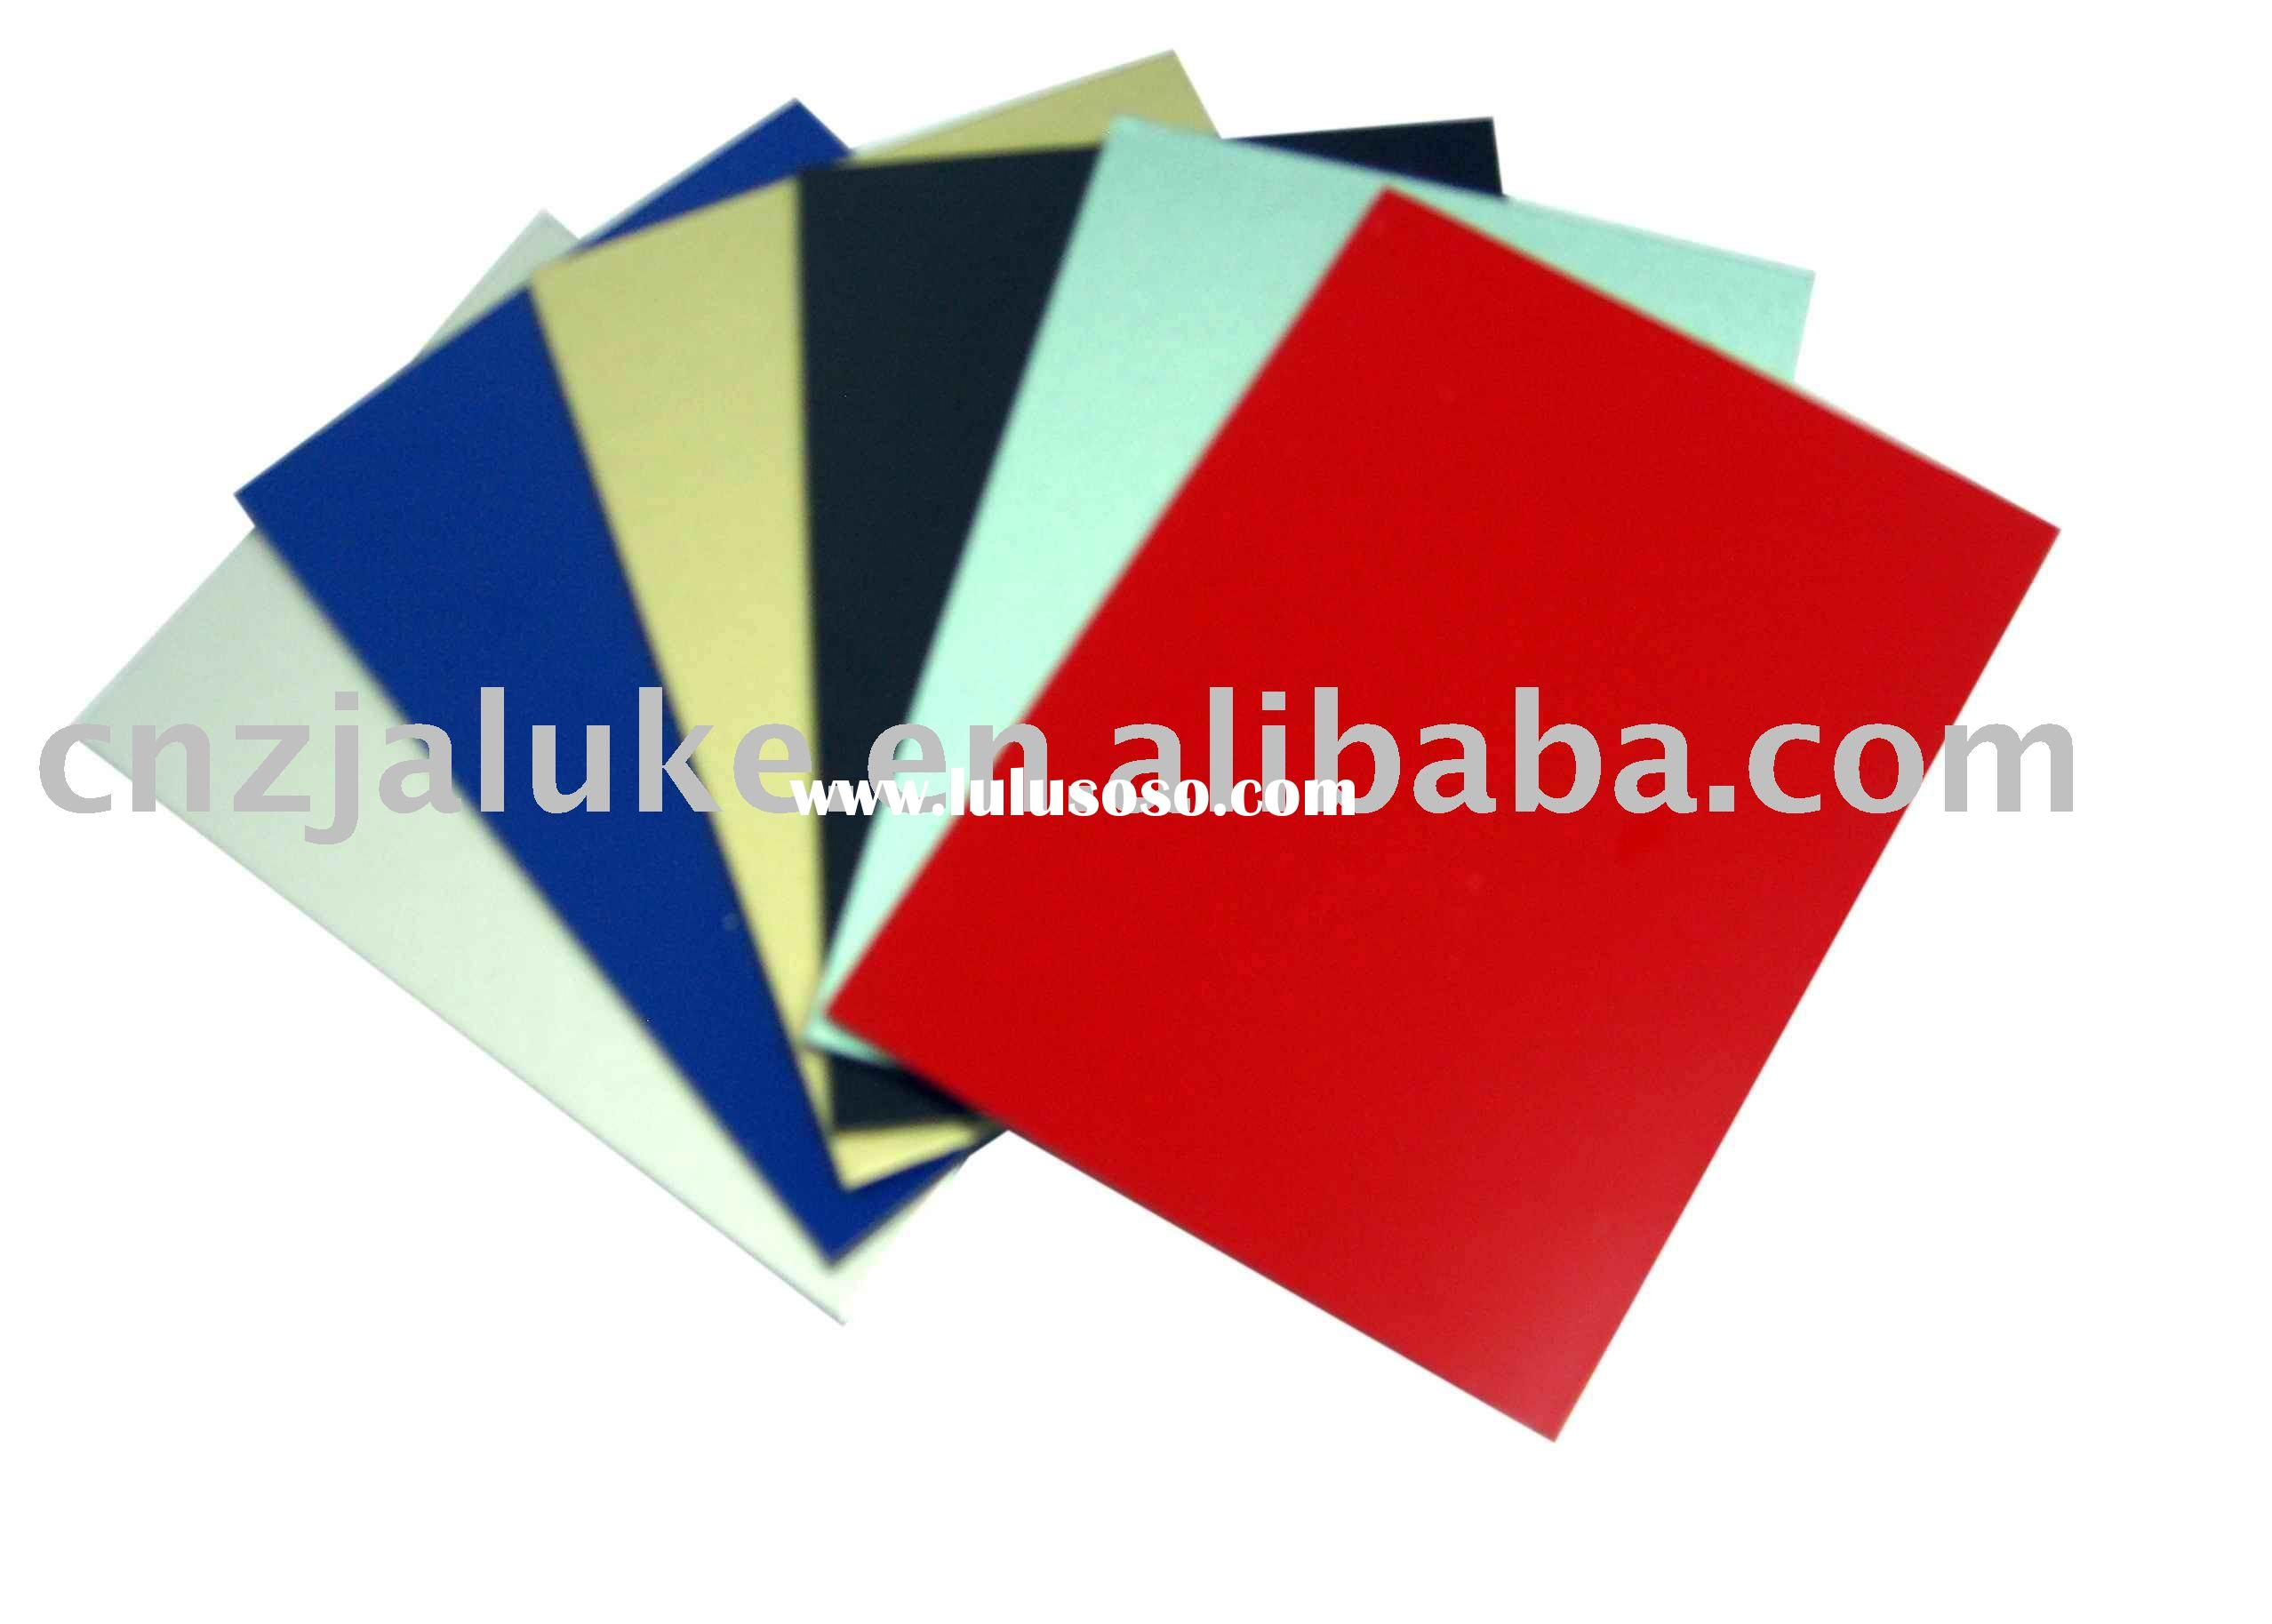 aluminium composite panel cladding, aluminium composite panel ...